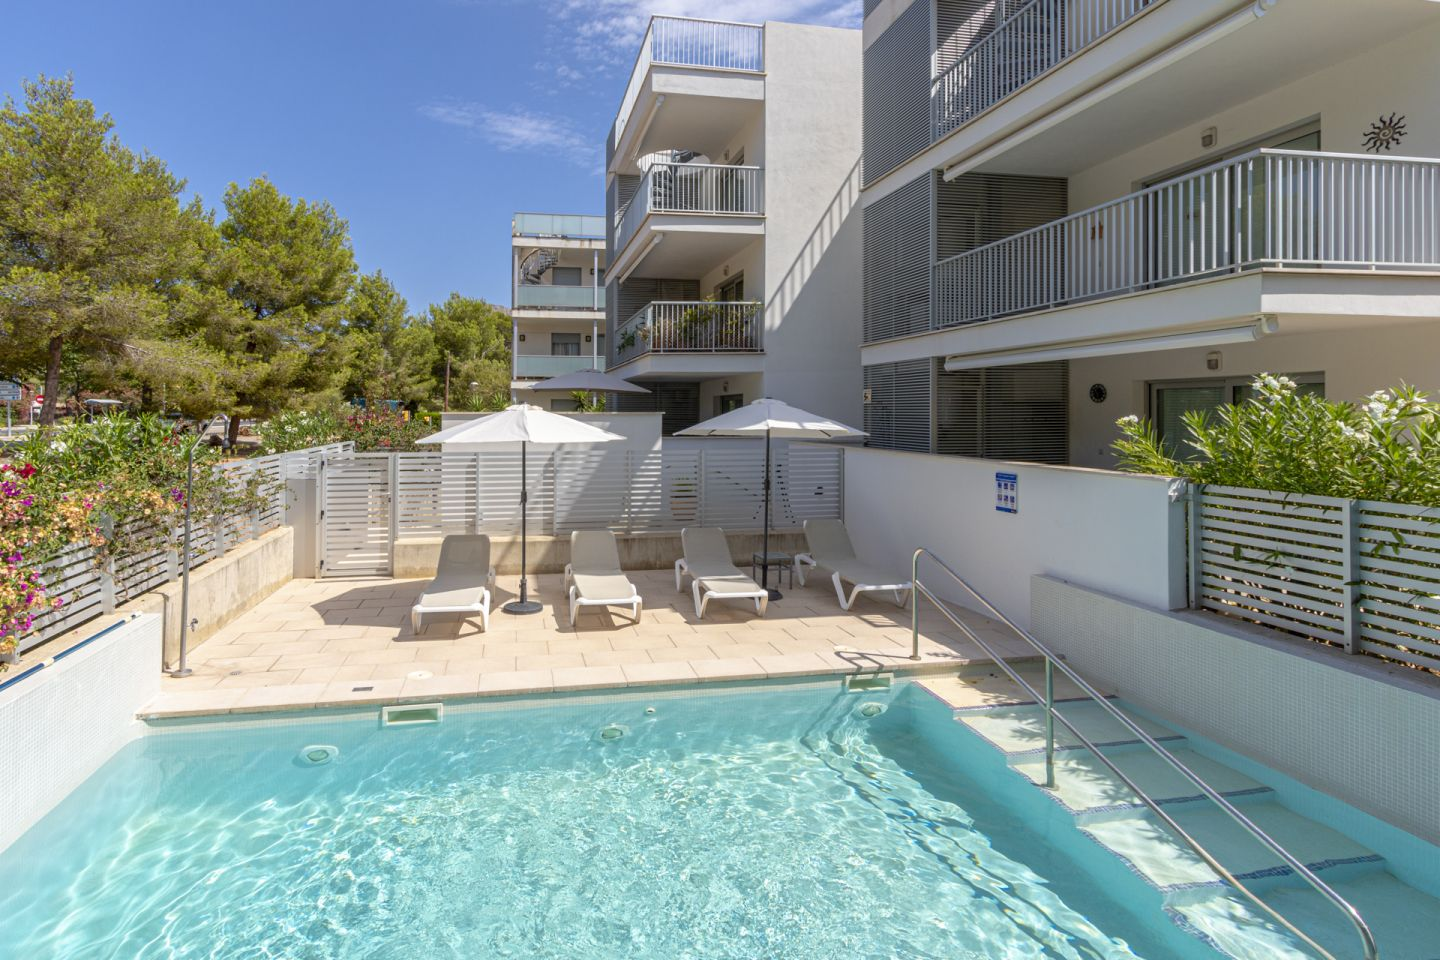 3 Bed Apartment for sale in Puerto Pollensa 1